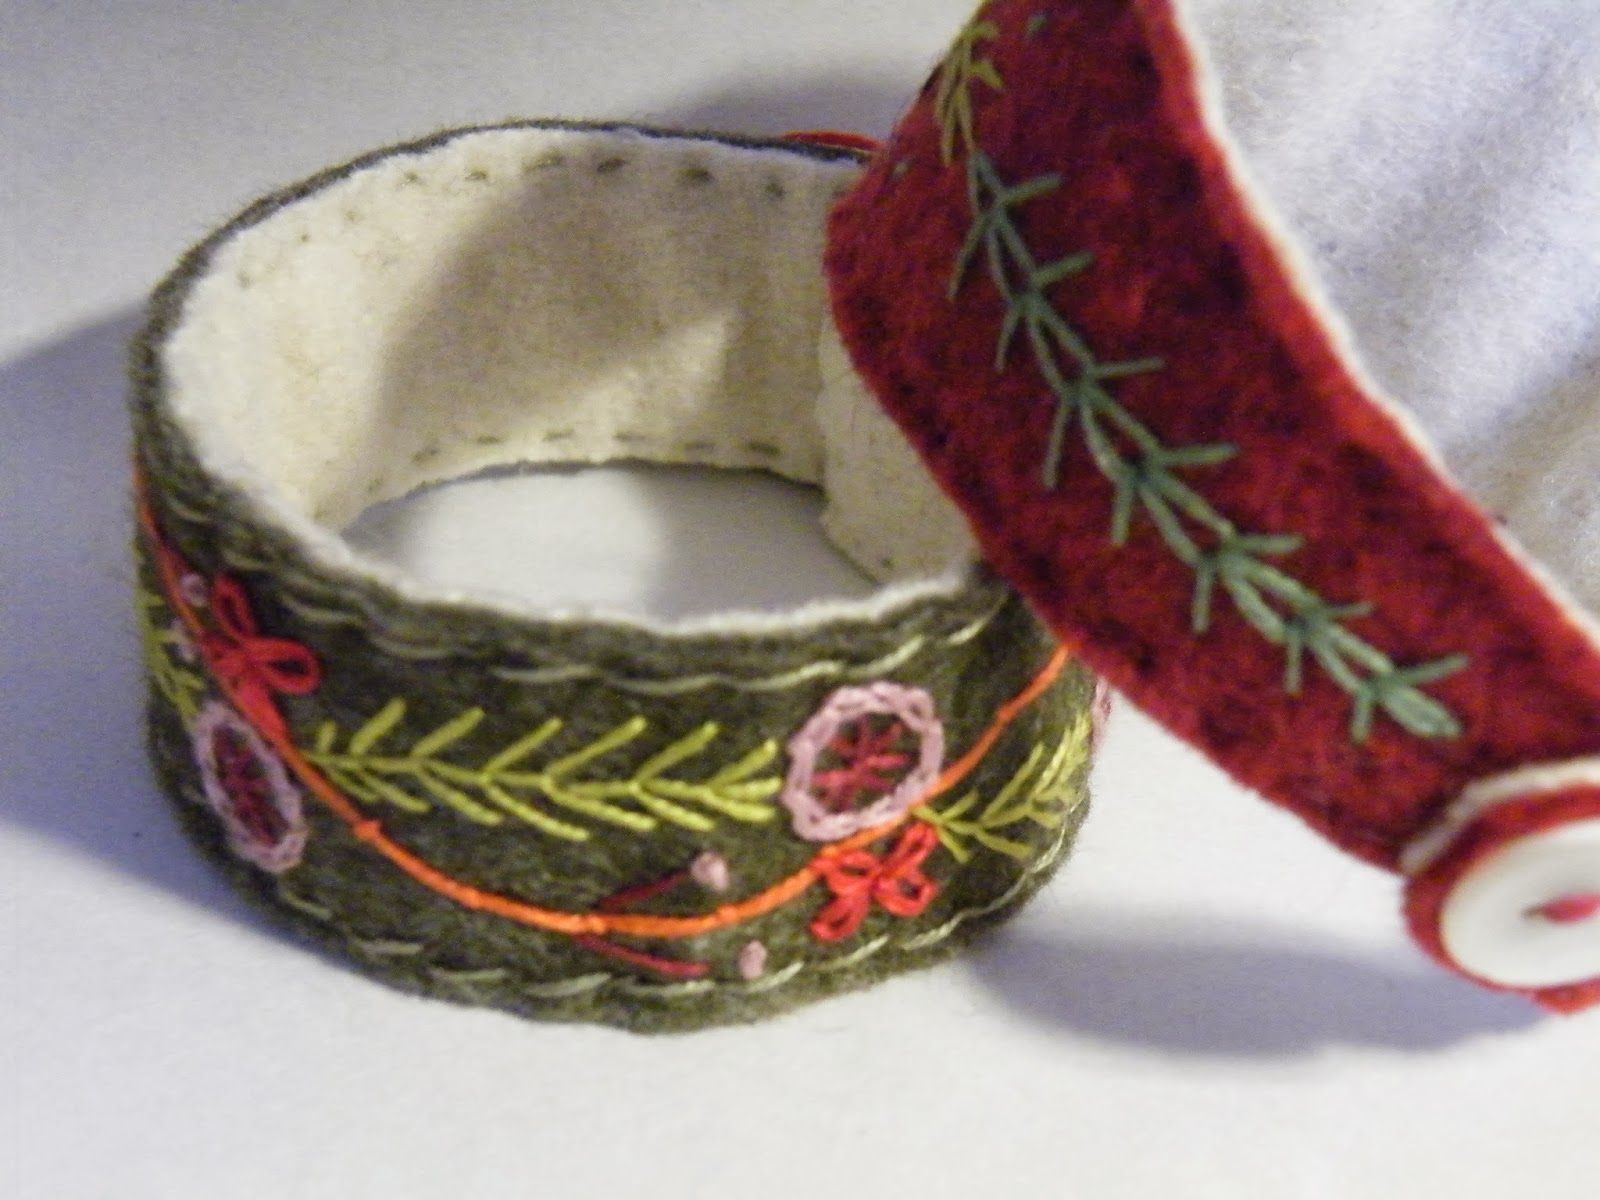 embroidered bracelet | by Erratic Needle embroidered bracelet | by Erratic  Needle